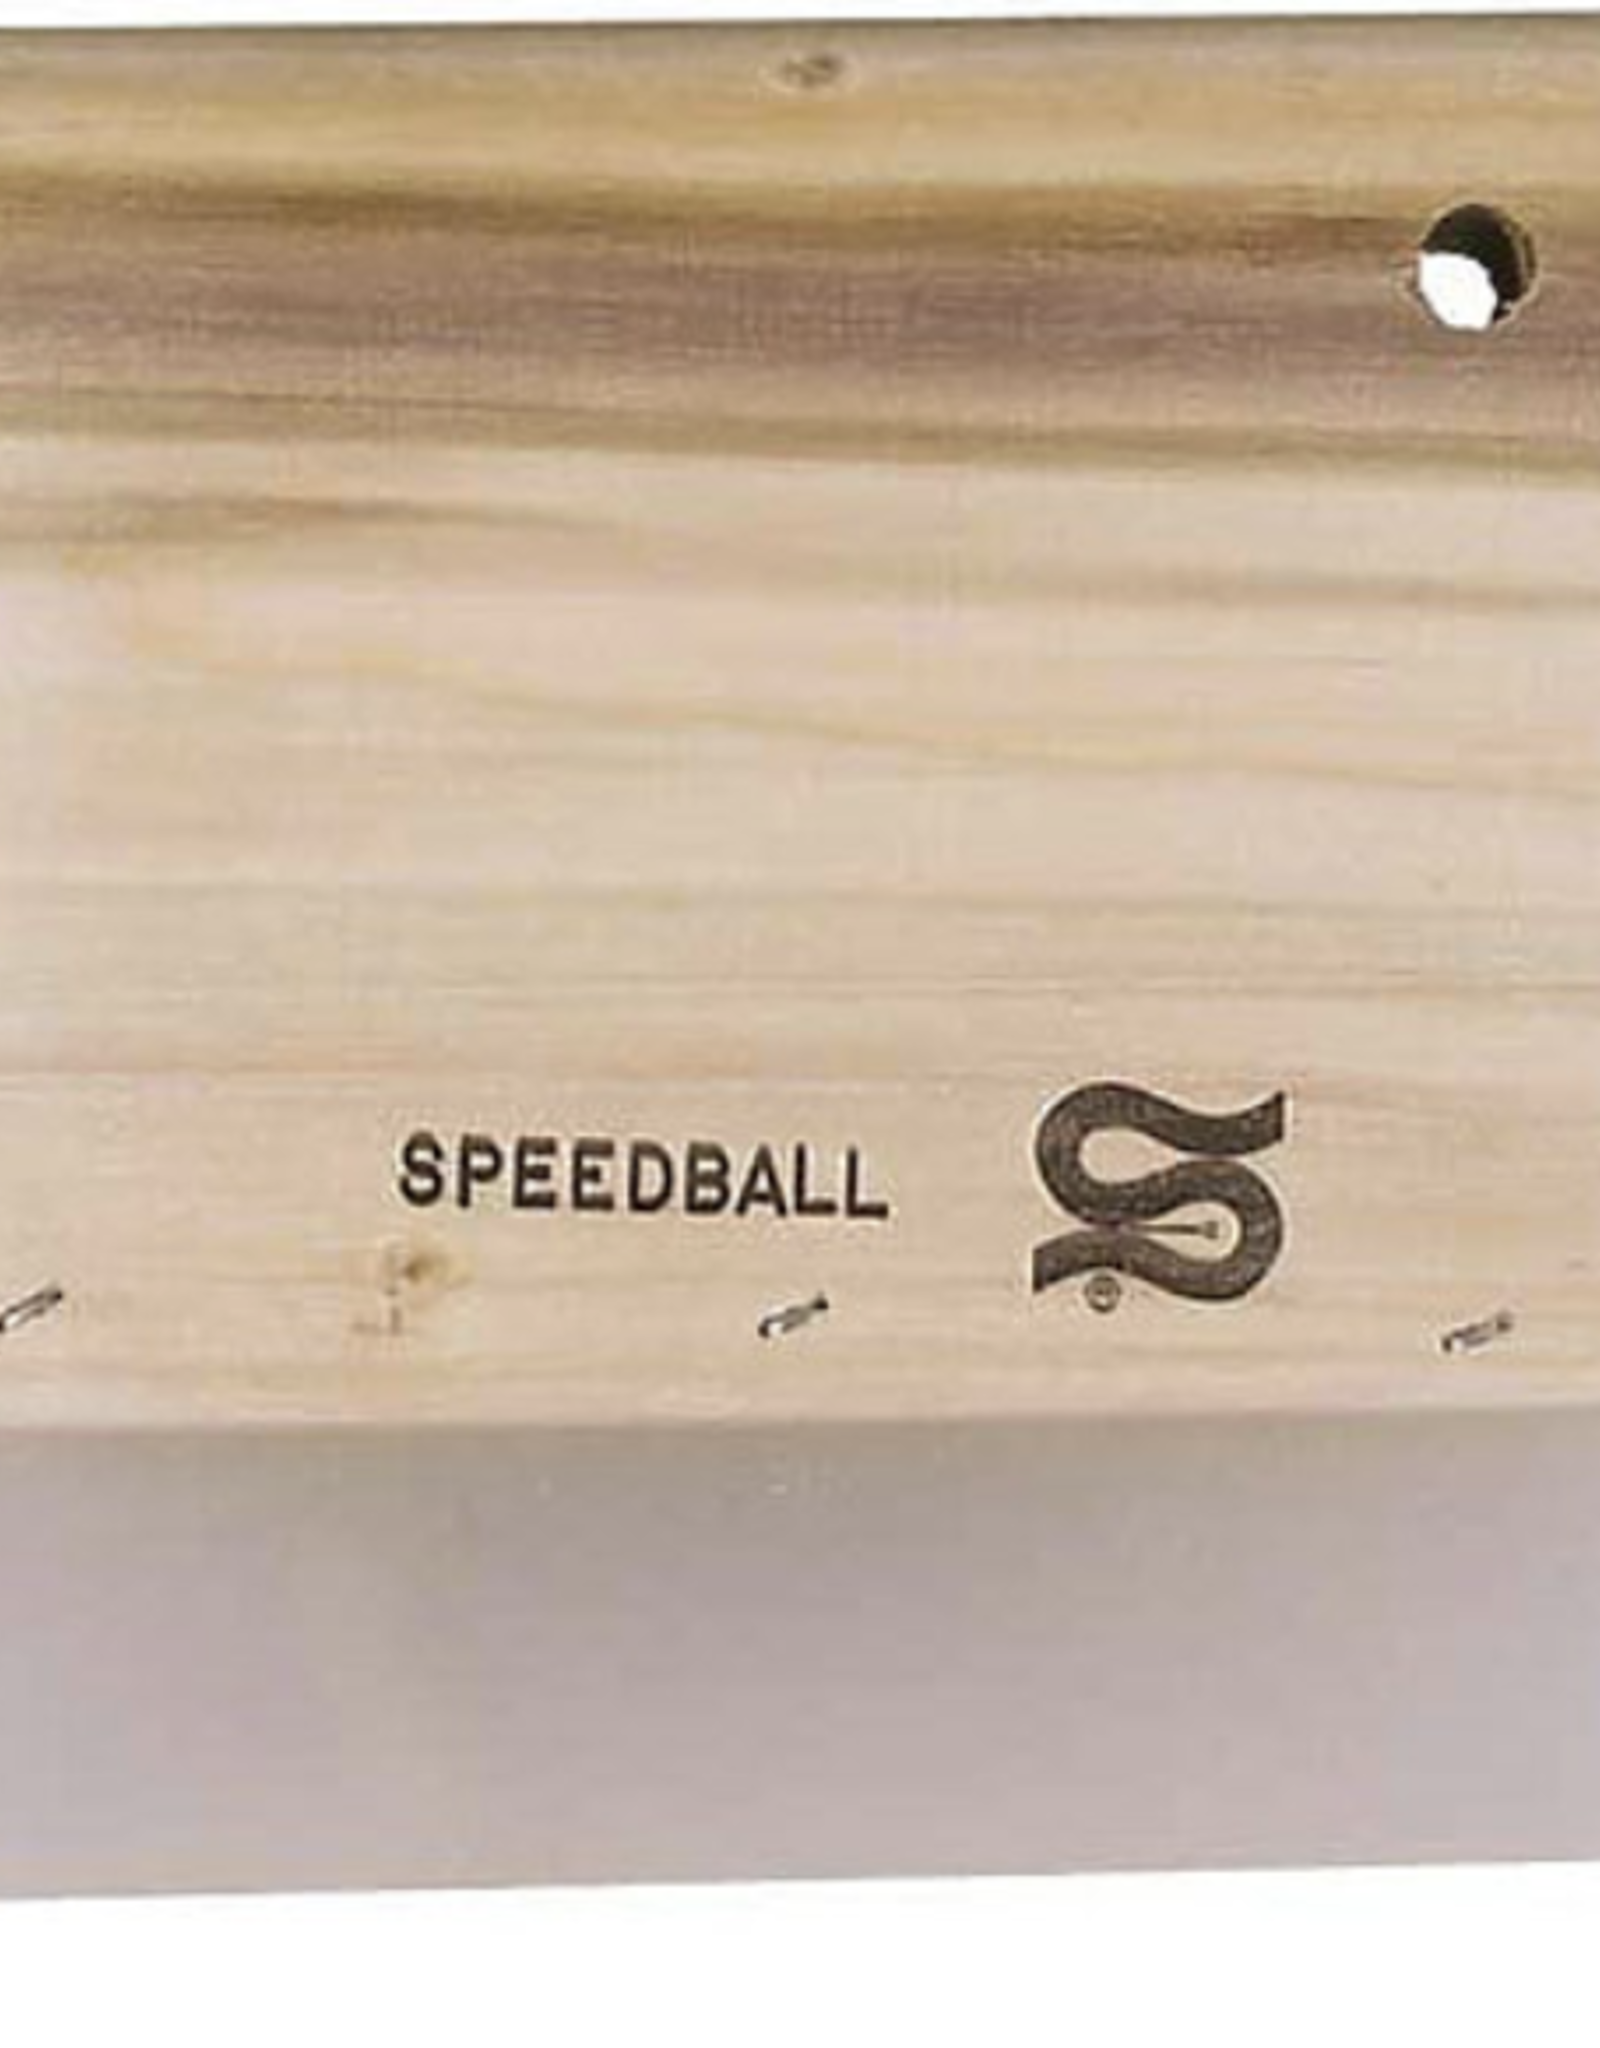 Speedball, Professional Graphic Squeegee, 8""